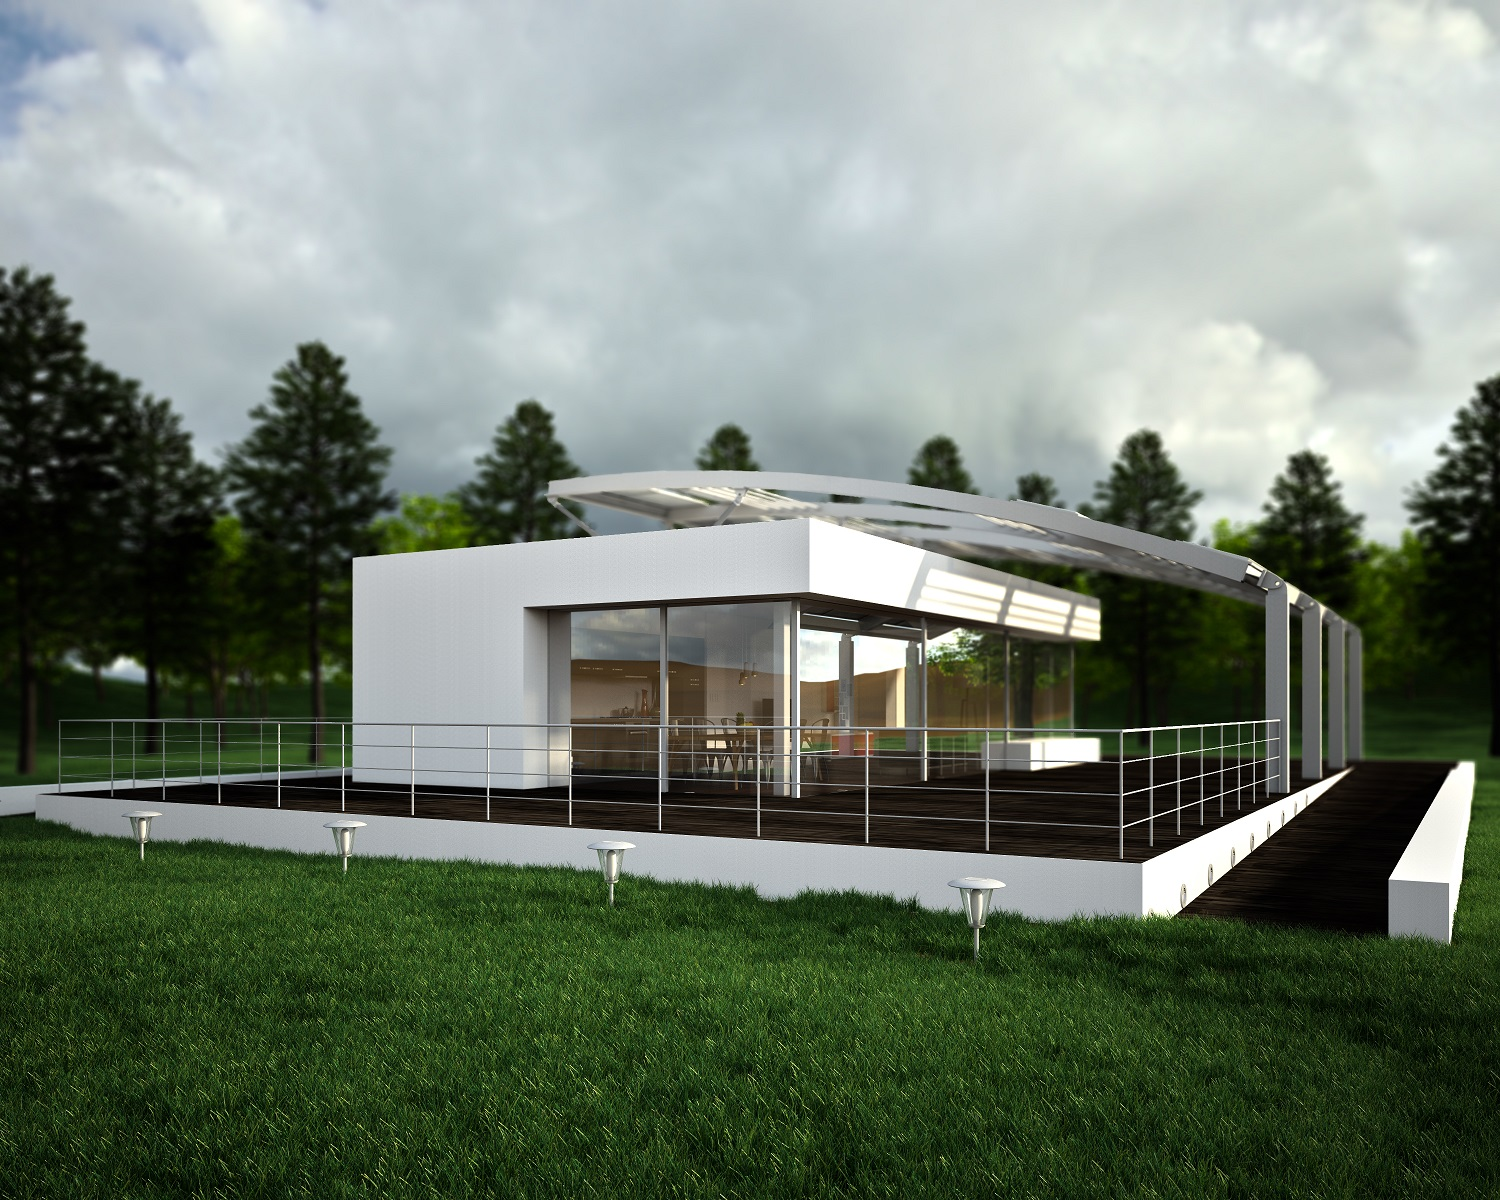 Computer-generated image of a modern-looking house.